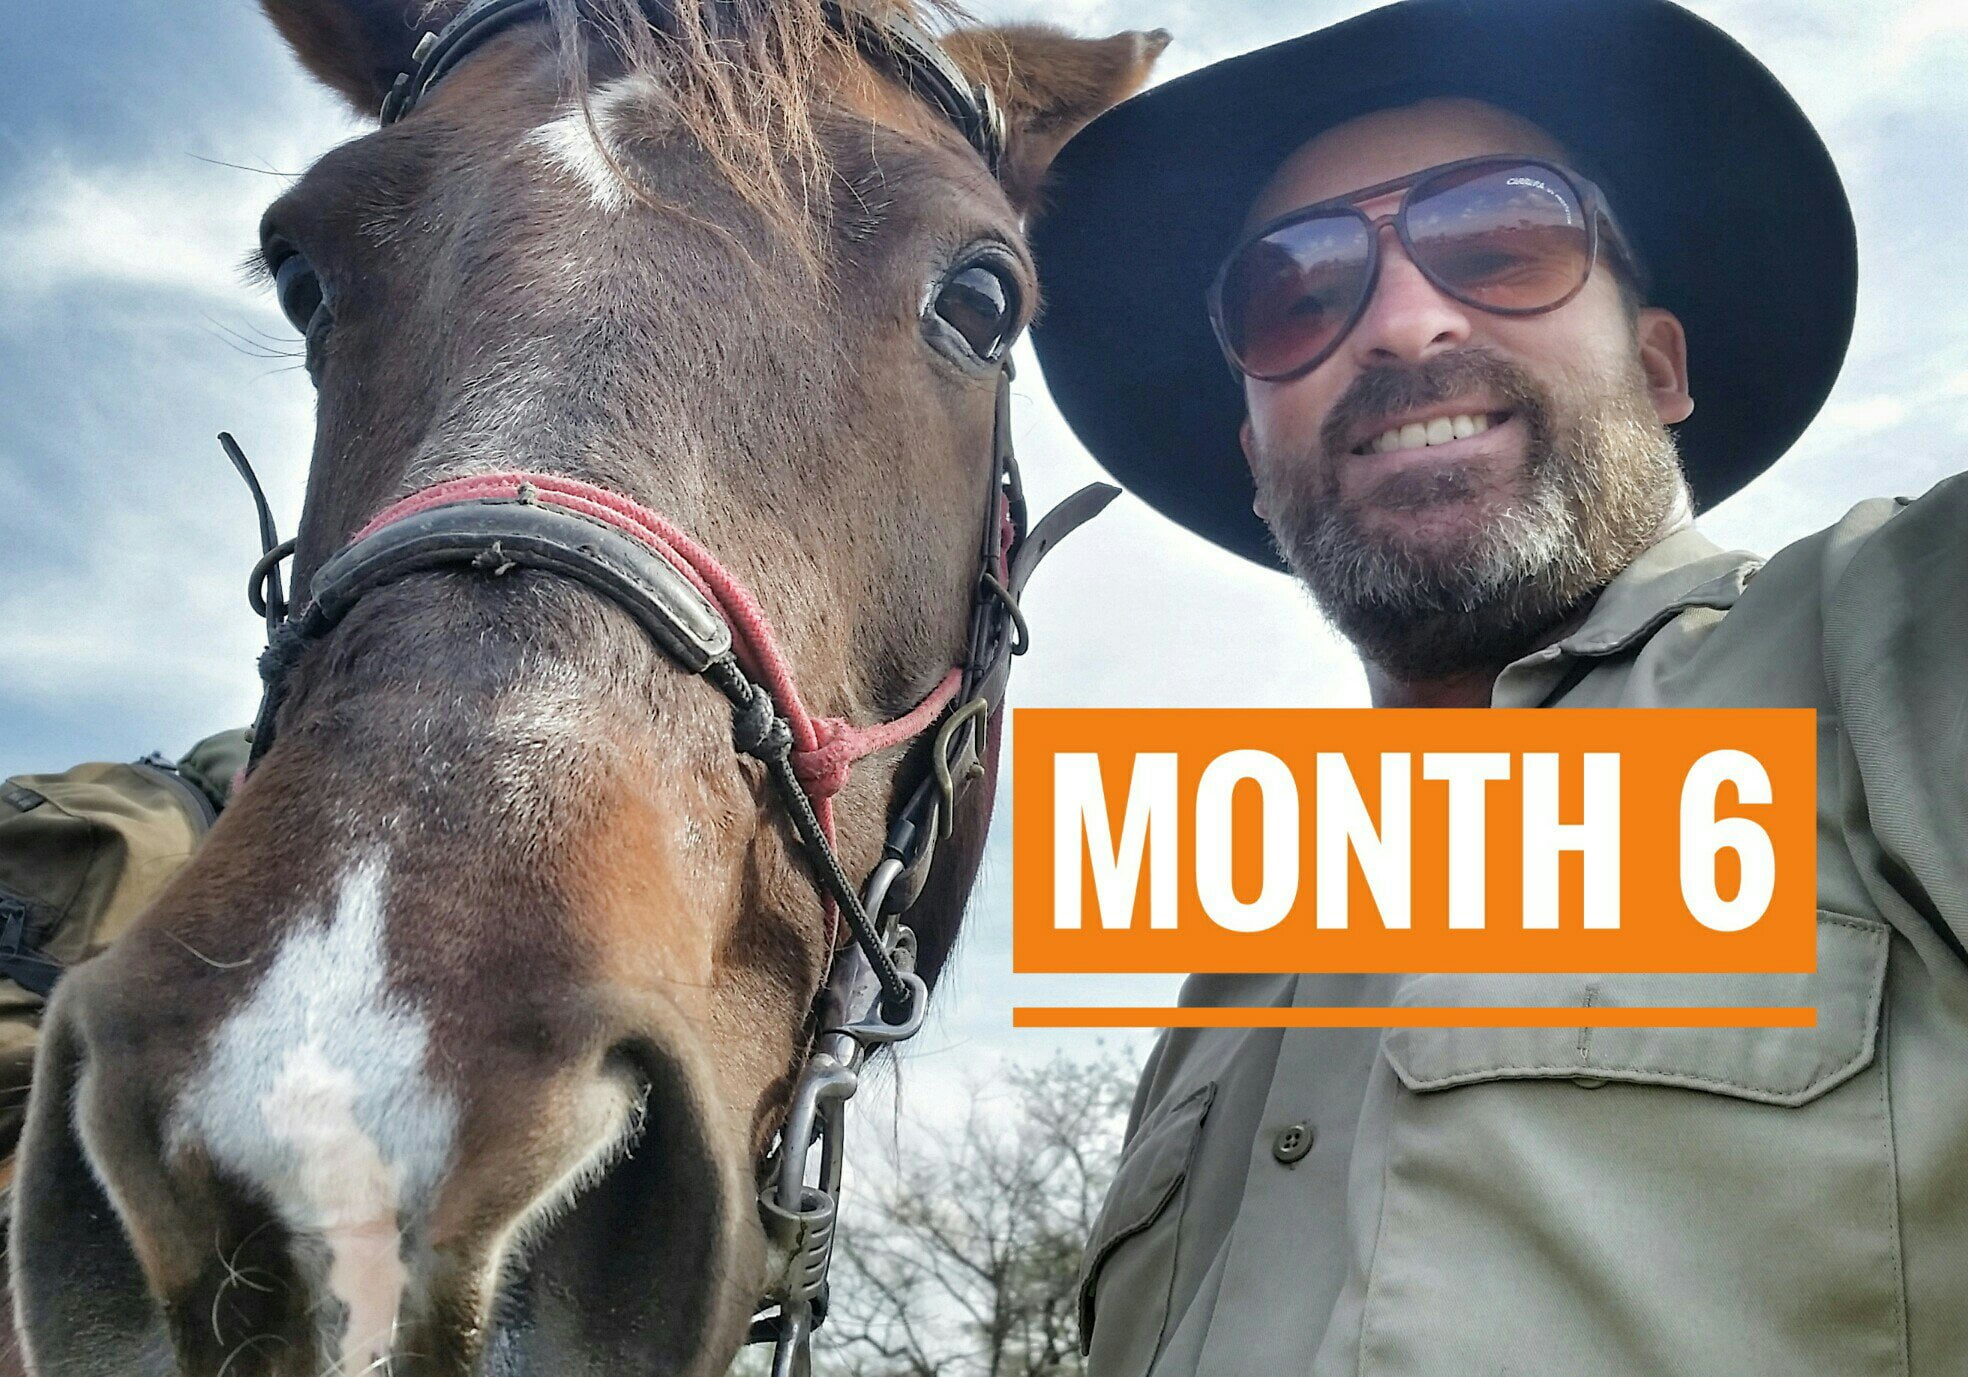 Month 6 | THE LAST MONTH